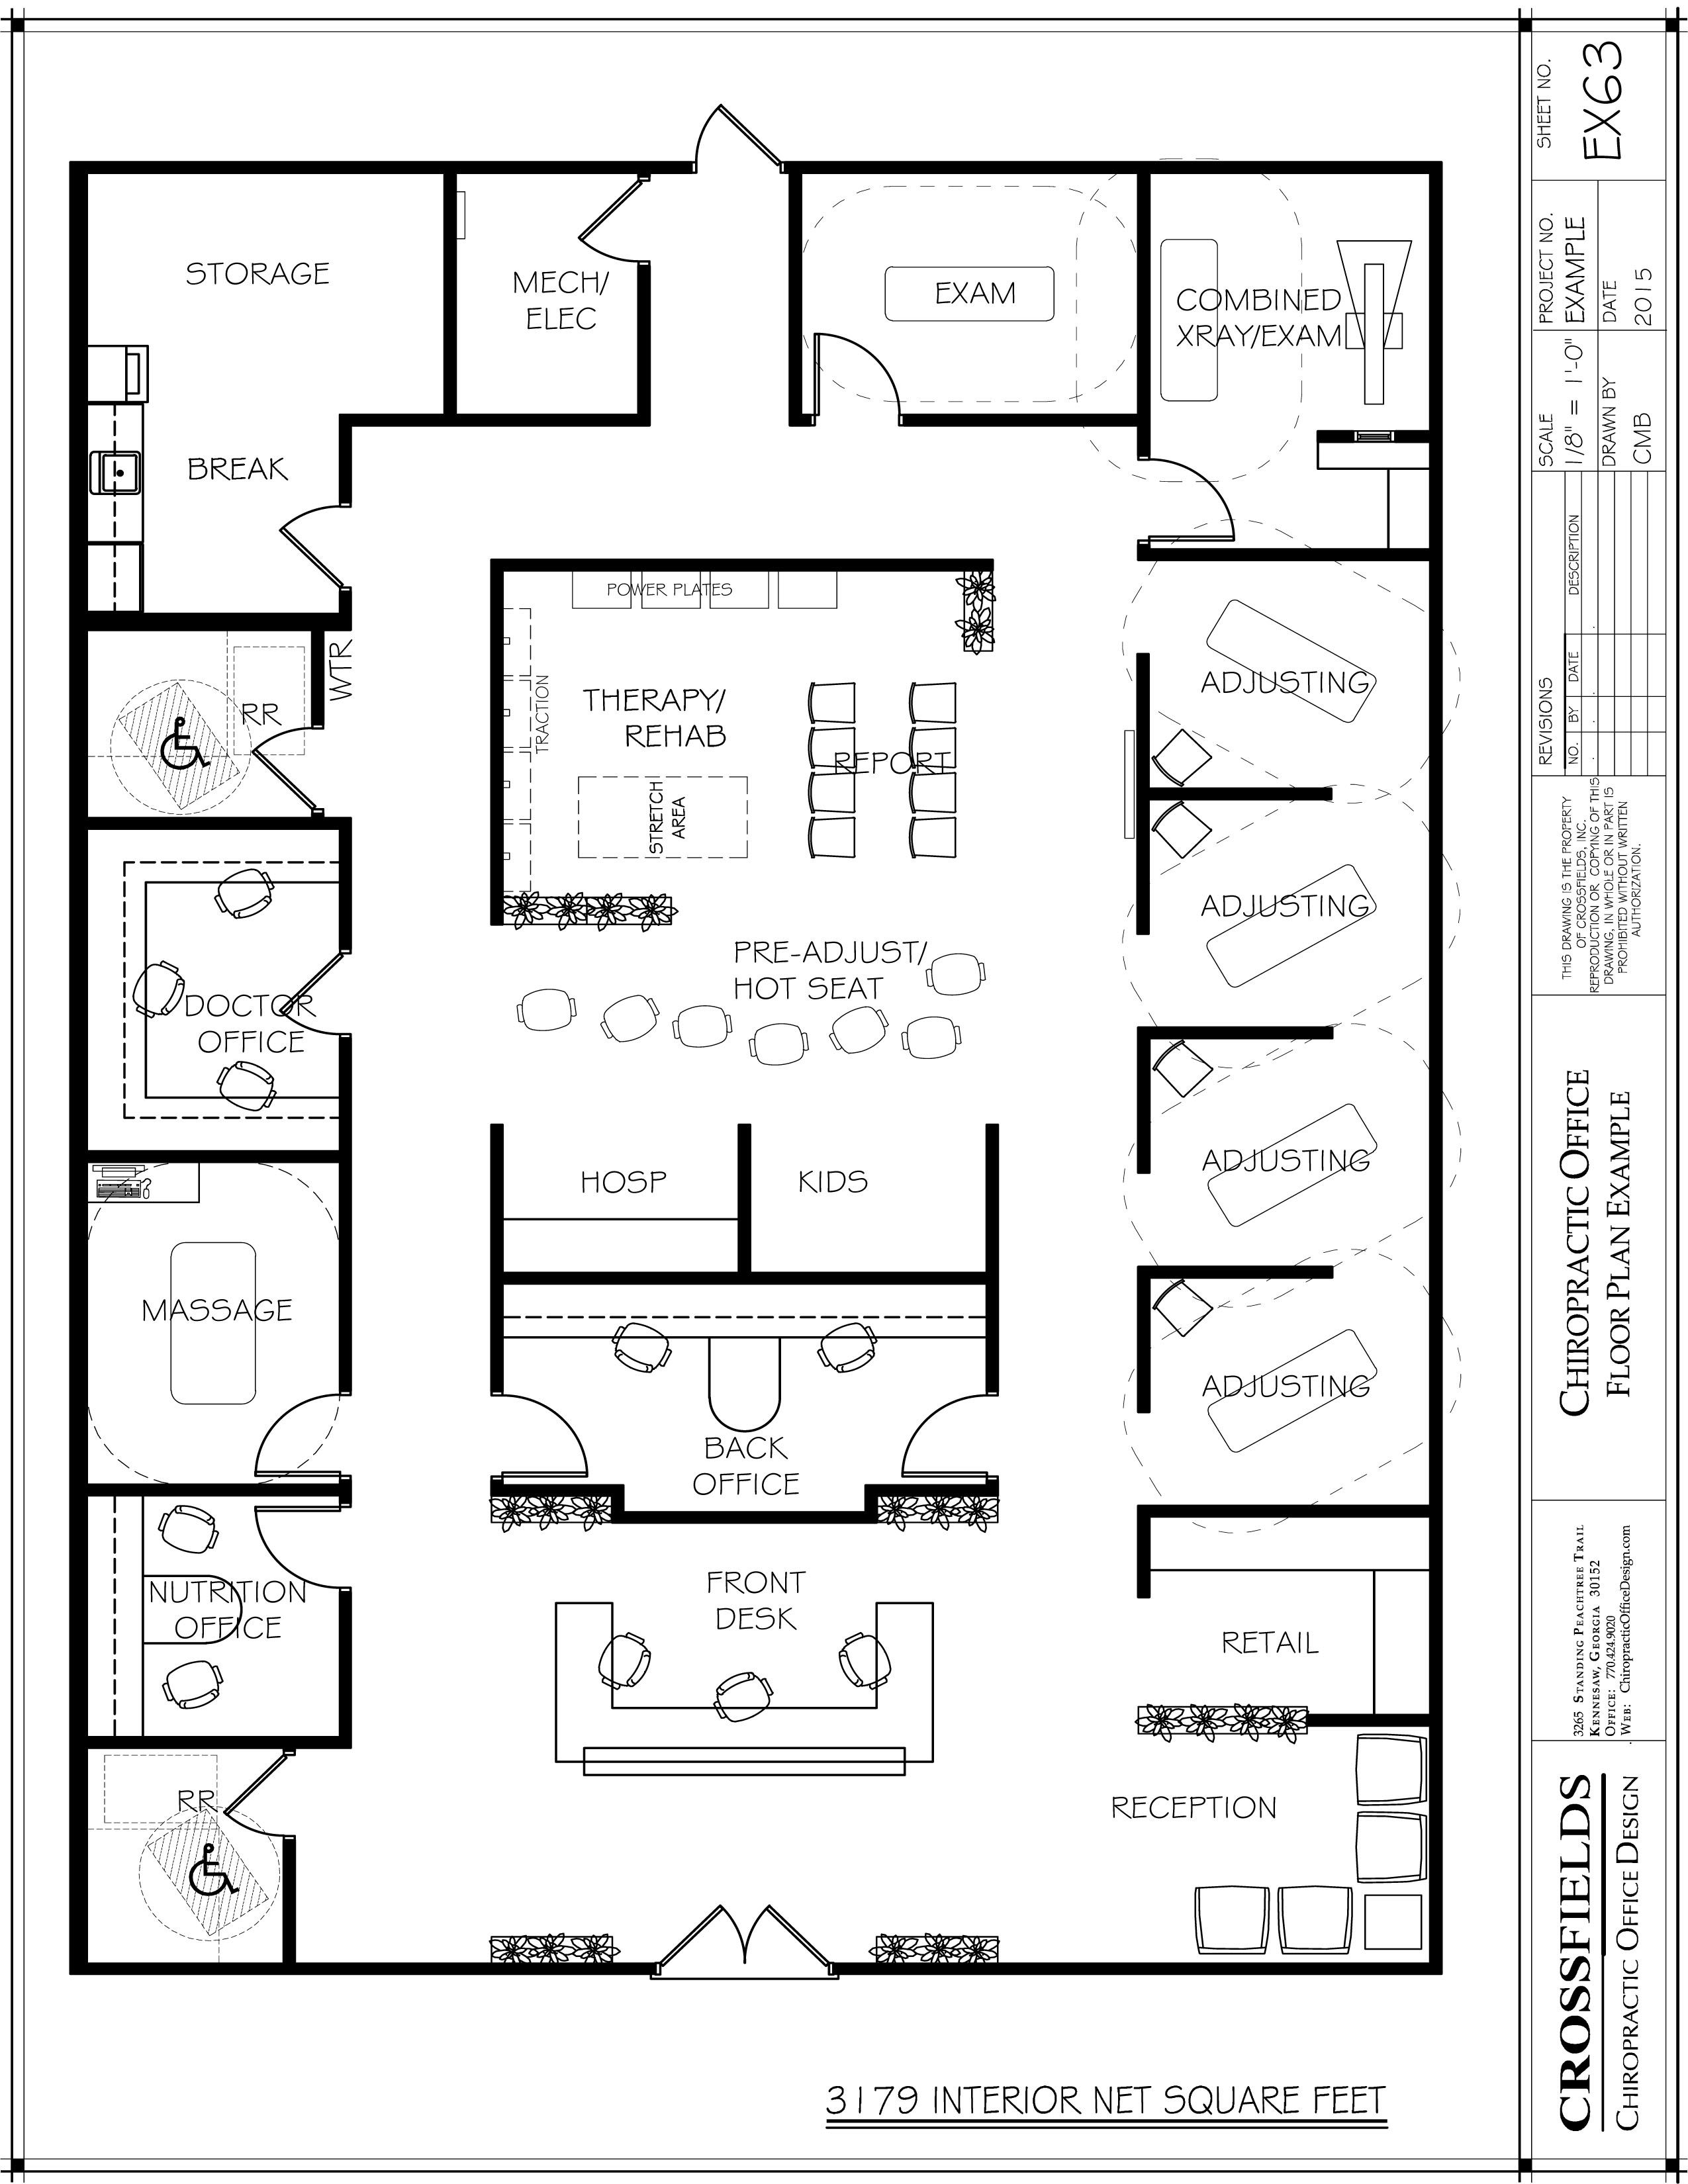 hight resolution of clinic layout diagrams wiring diagram blogclinic layout diagrams wiring diagram chiropractic office floor plans versatile medical